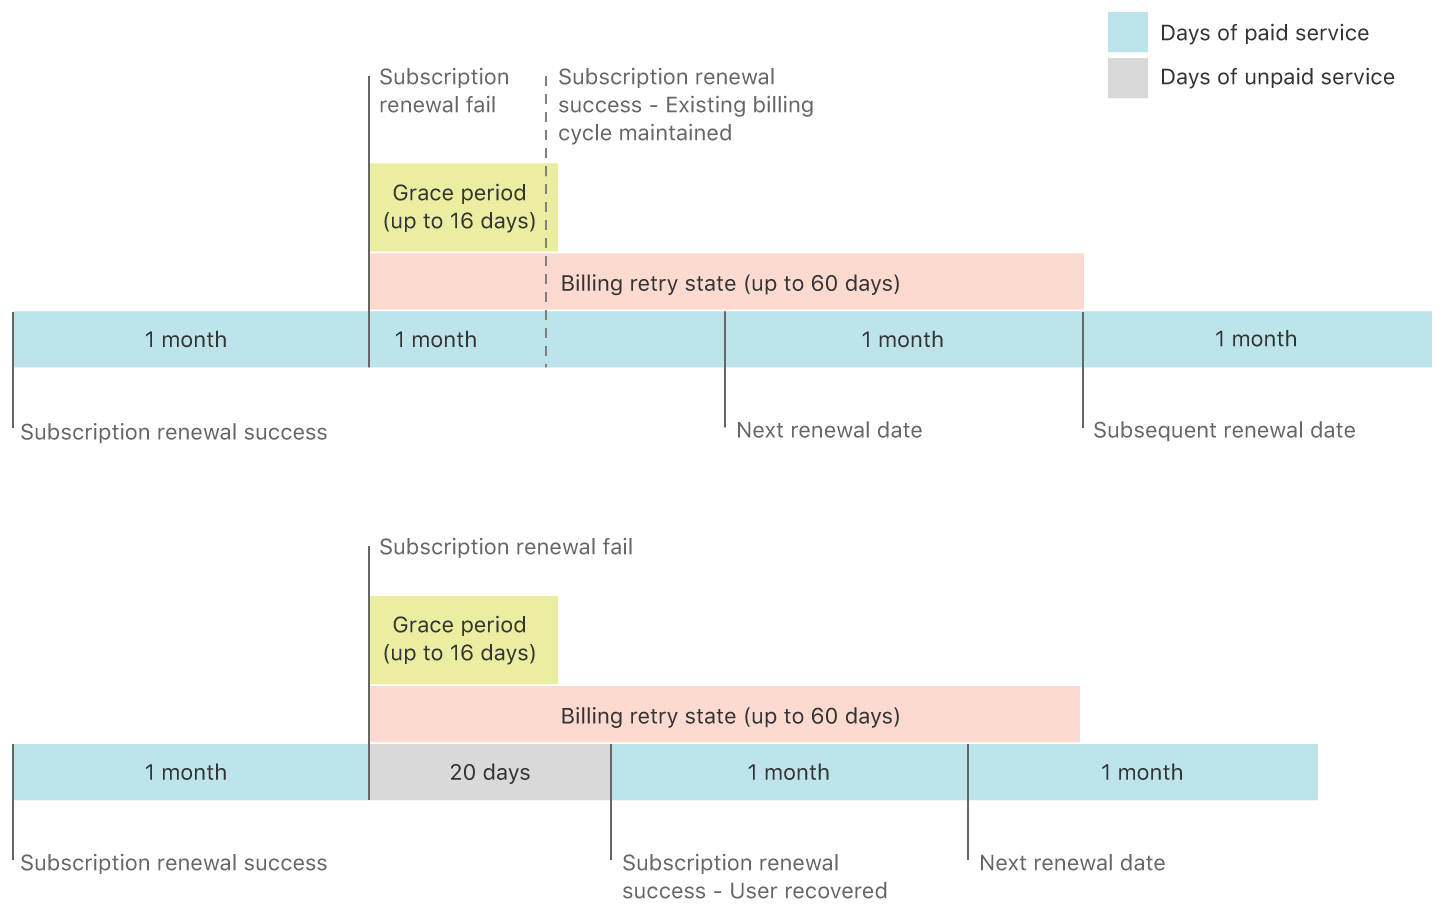 Two example timelines for a monthly subscription that enters a billing retry state, in an app for which Billing Grace Period is enabled. In the first scenario, the user is recovered within the grace period, the developer is paid for providing full service, and the following renewal date is preserved. In the second scenario, the user is recovered not within the grace period but within 60 days, so the next renewal date shifts to the date the customer is billed.